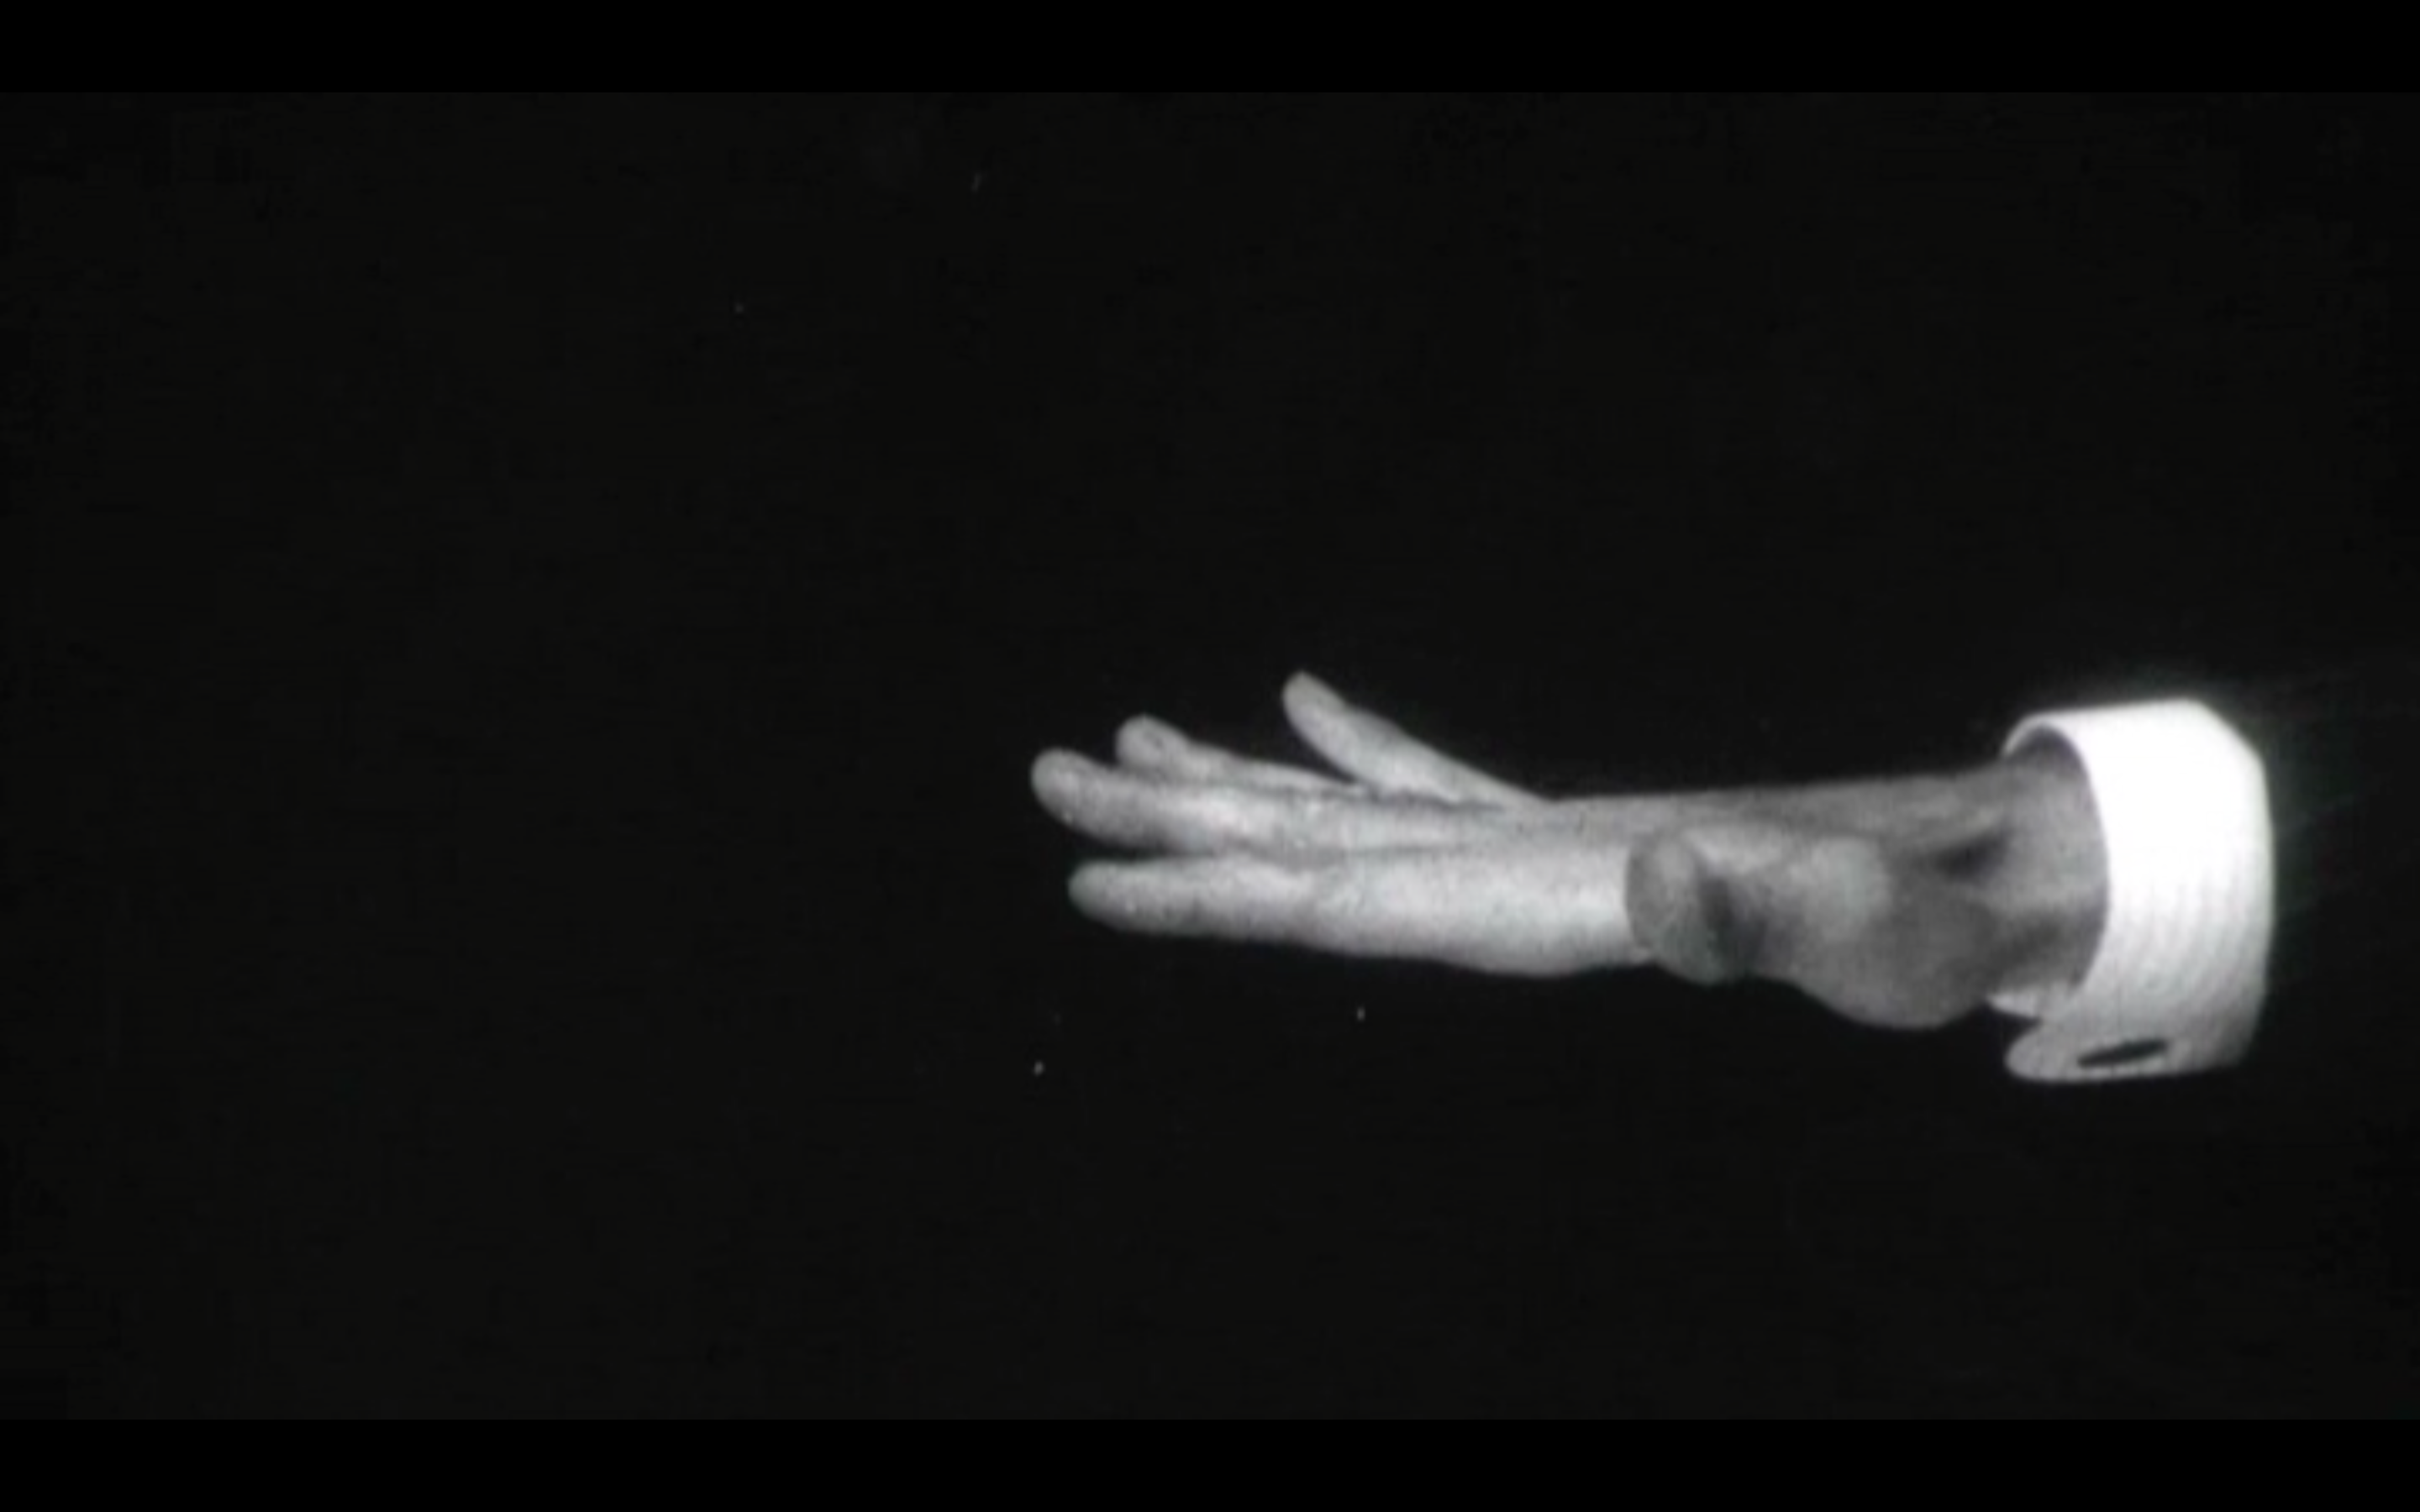 black and white archive film footage, a hand enters from the right hand side of the frame.